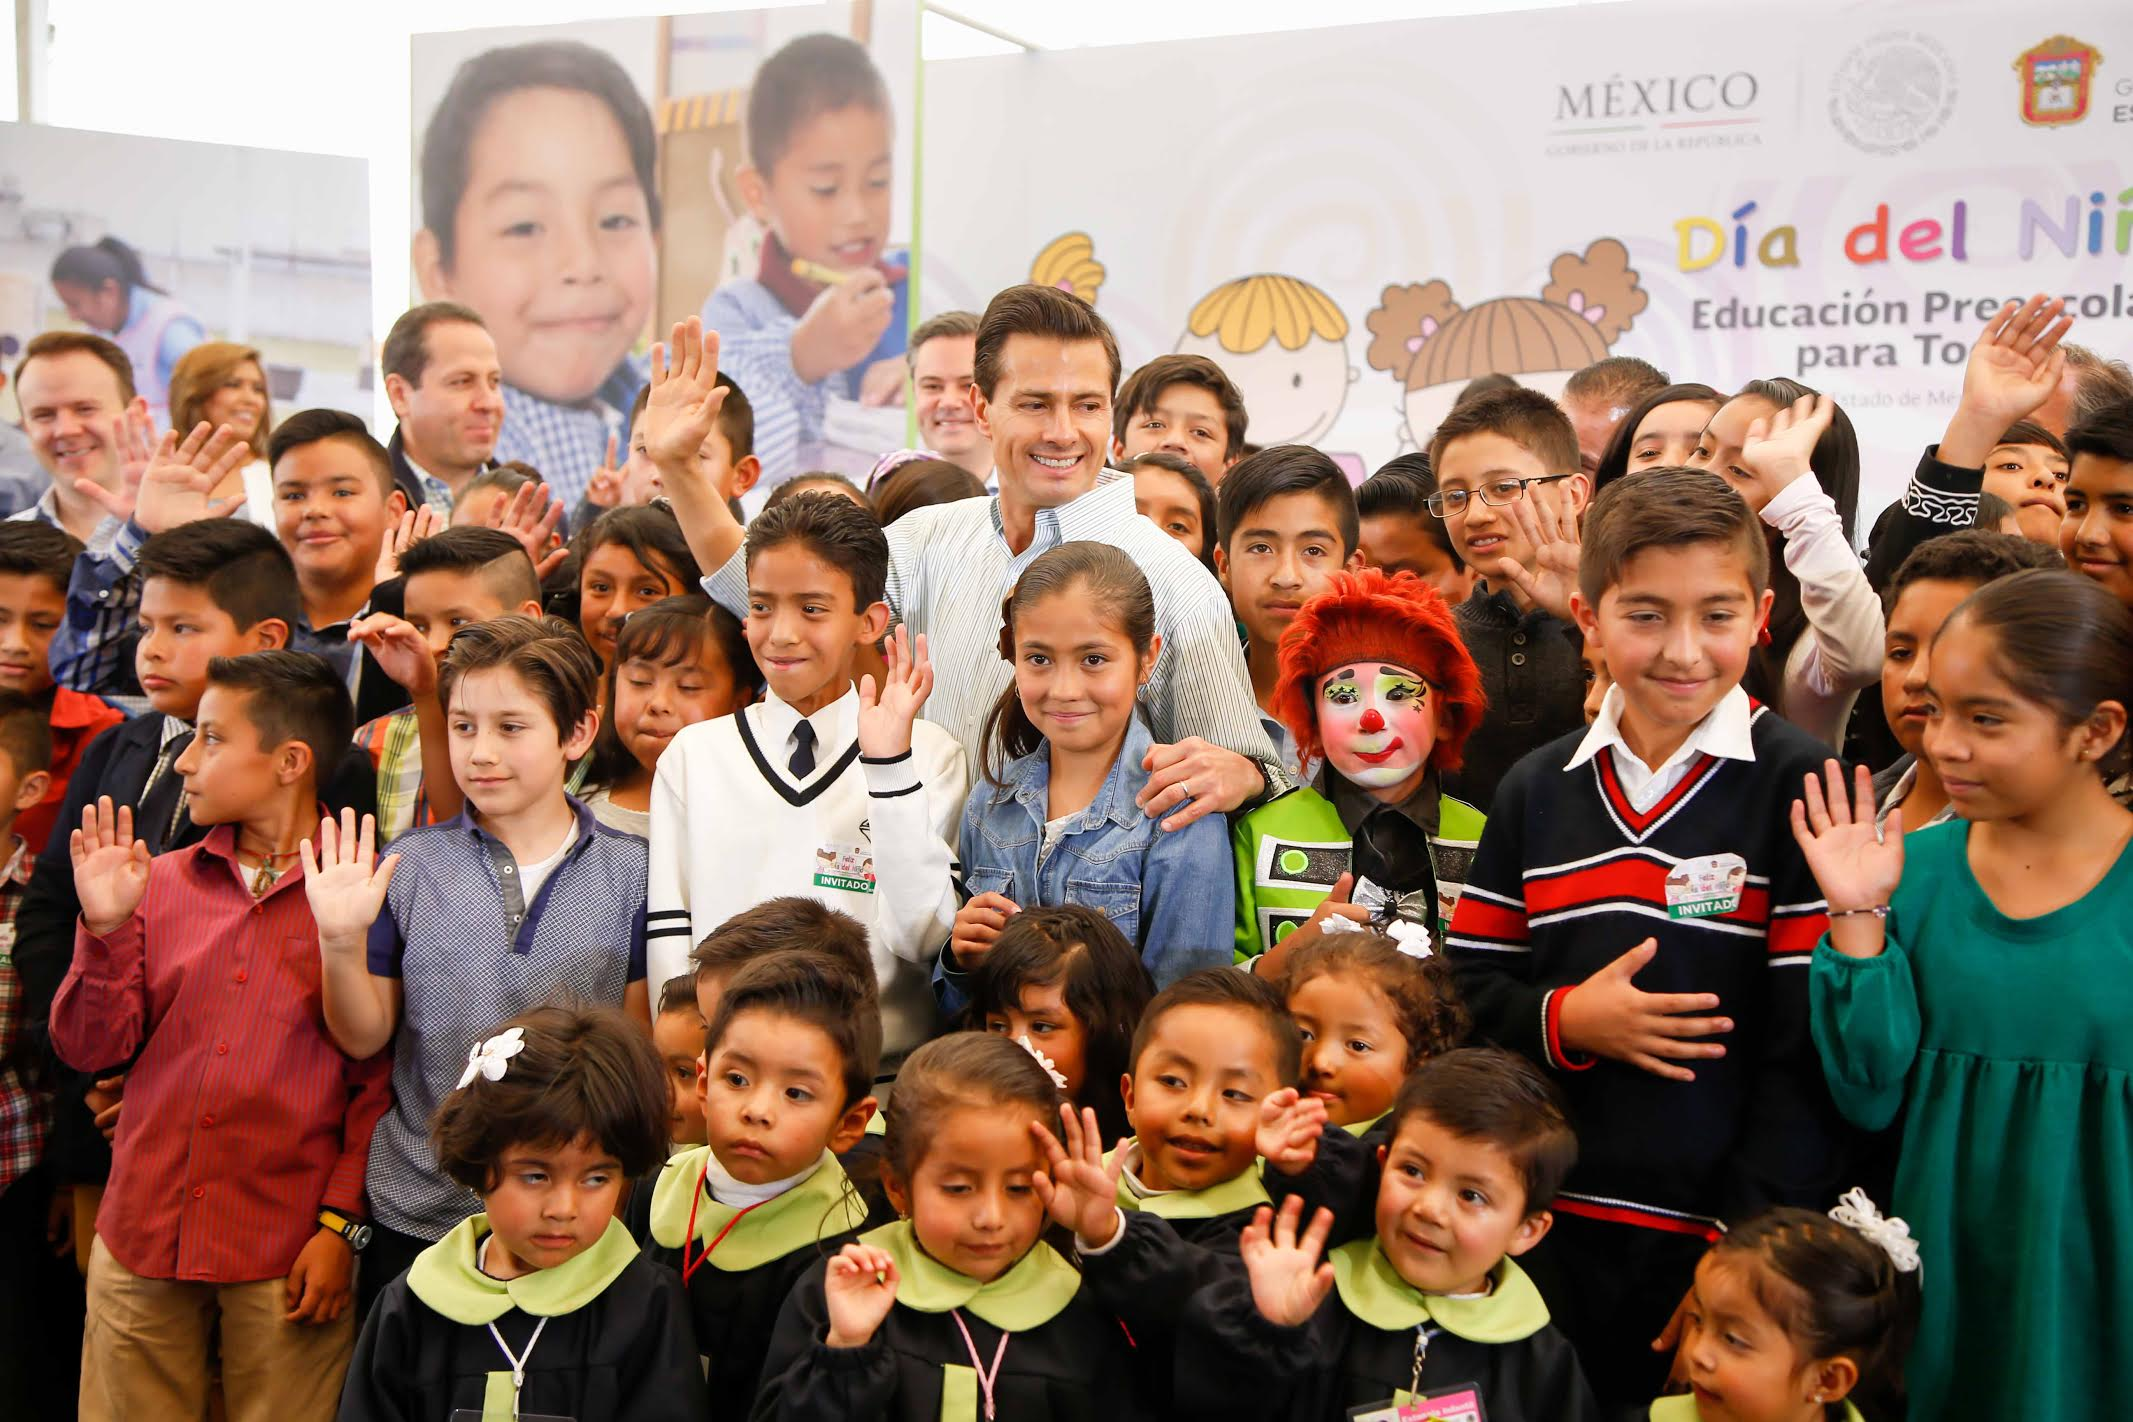 """The president congratulated, """"All the children in our country, the boys and girls of Mexico, ahead of the Children's Day celebration tomorrow. From here, we wish to congratulate them and wish them well."""